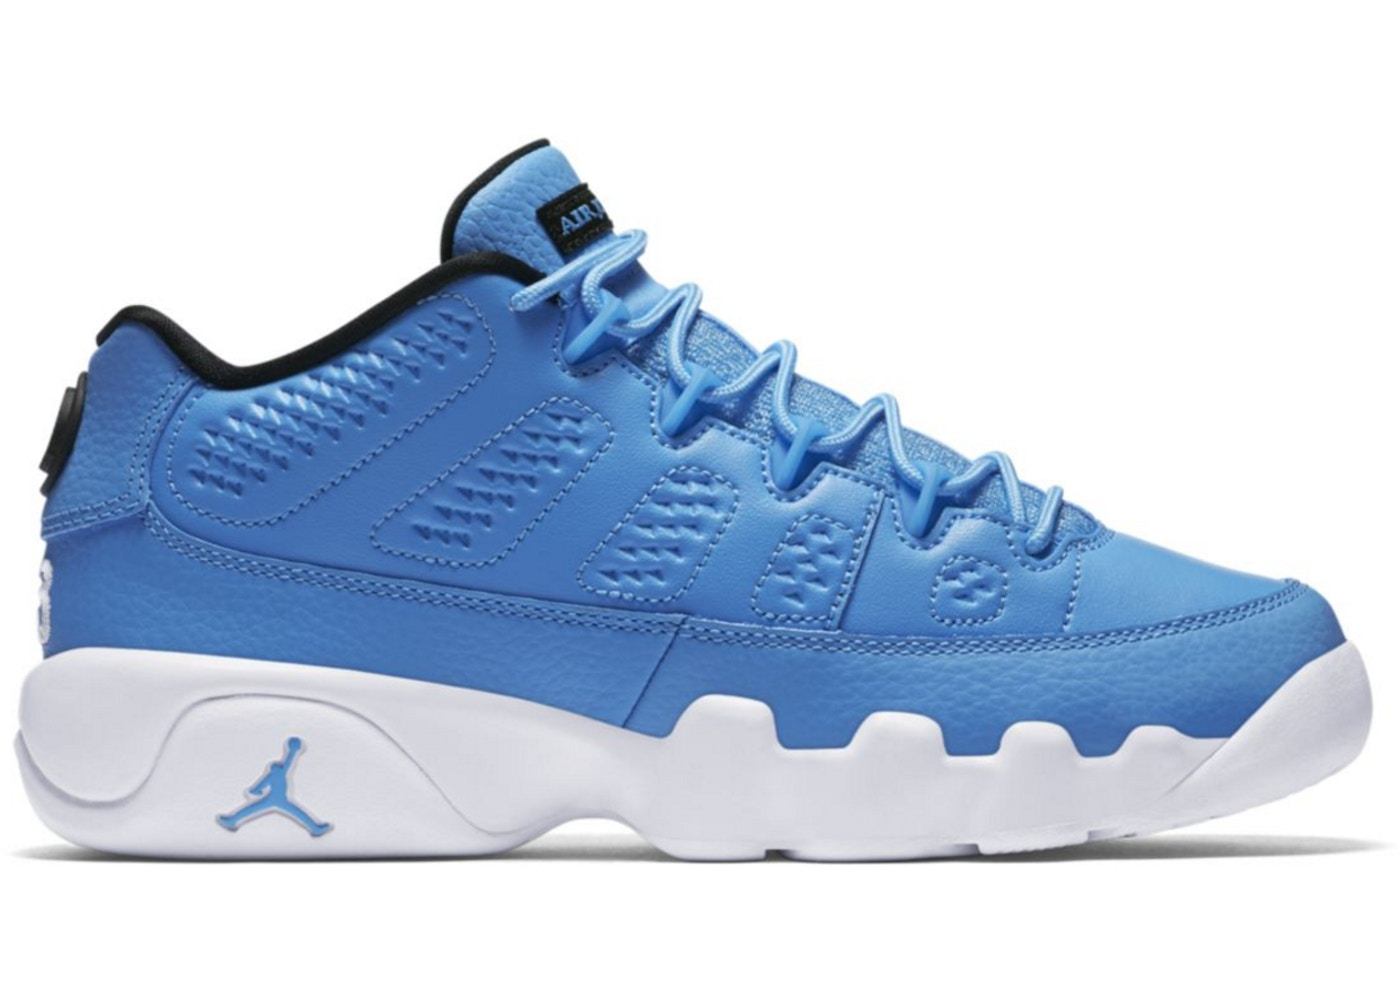 quality design 9689a 81a9d Jordan 9 Retro Low Pantone (GS) - 833447-401